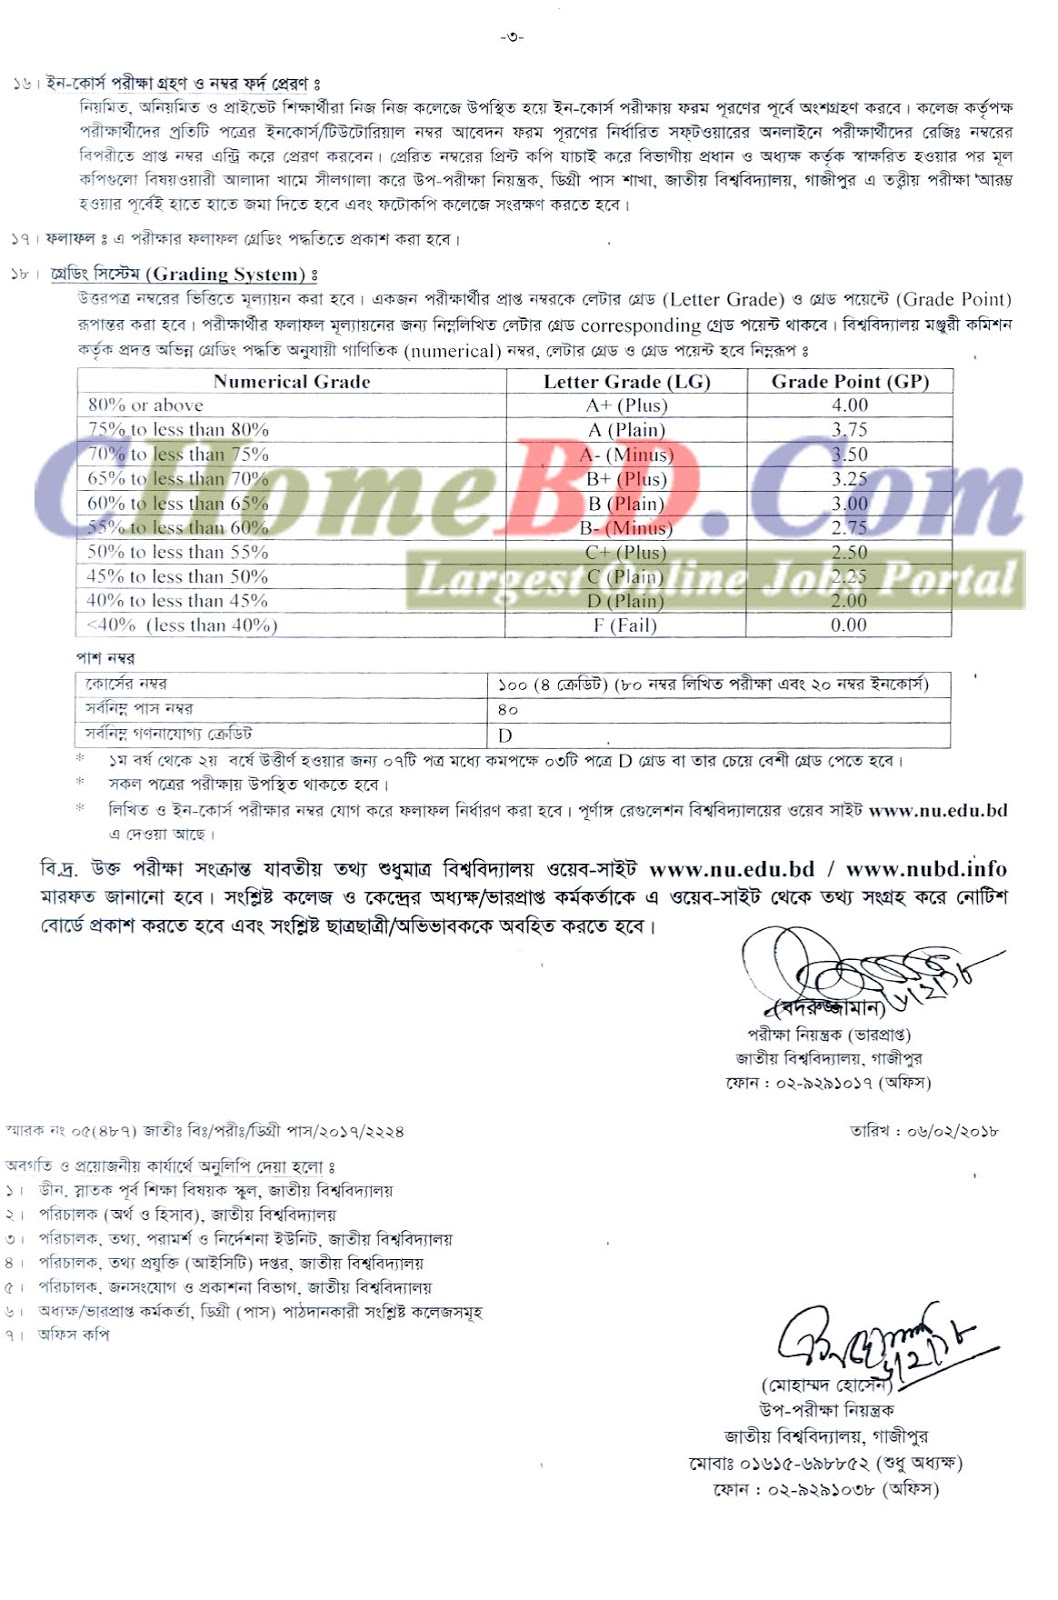 National University Degree 1st year Form Fill Up Notice 2018